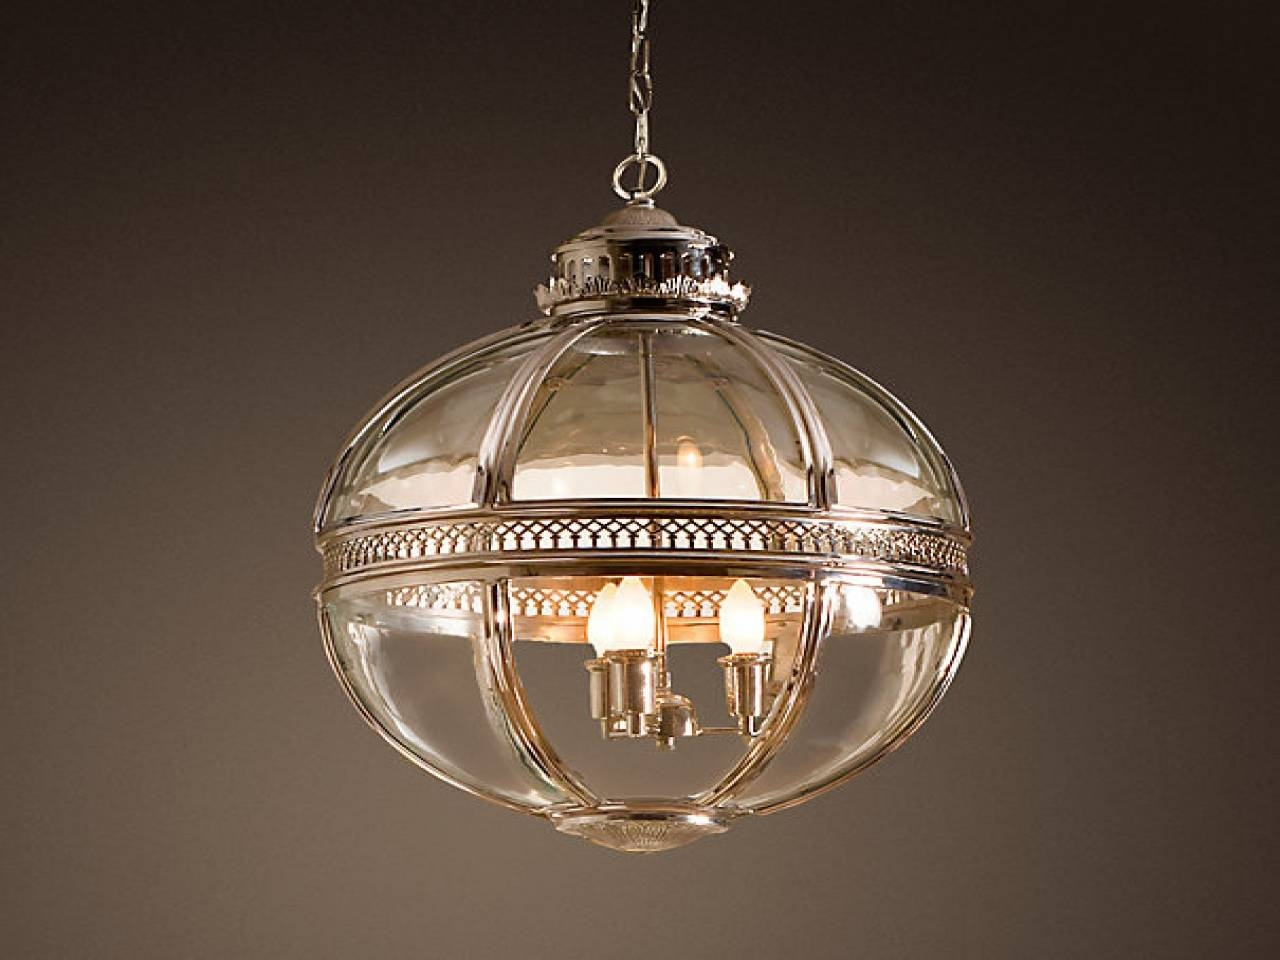 Victorian Pendant Lighting - Baby-Exit throughout Victorian Hotel Pendants (Image 15 of 15)